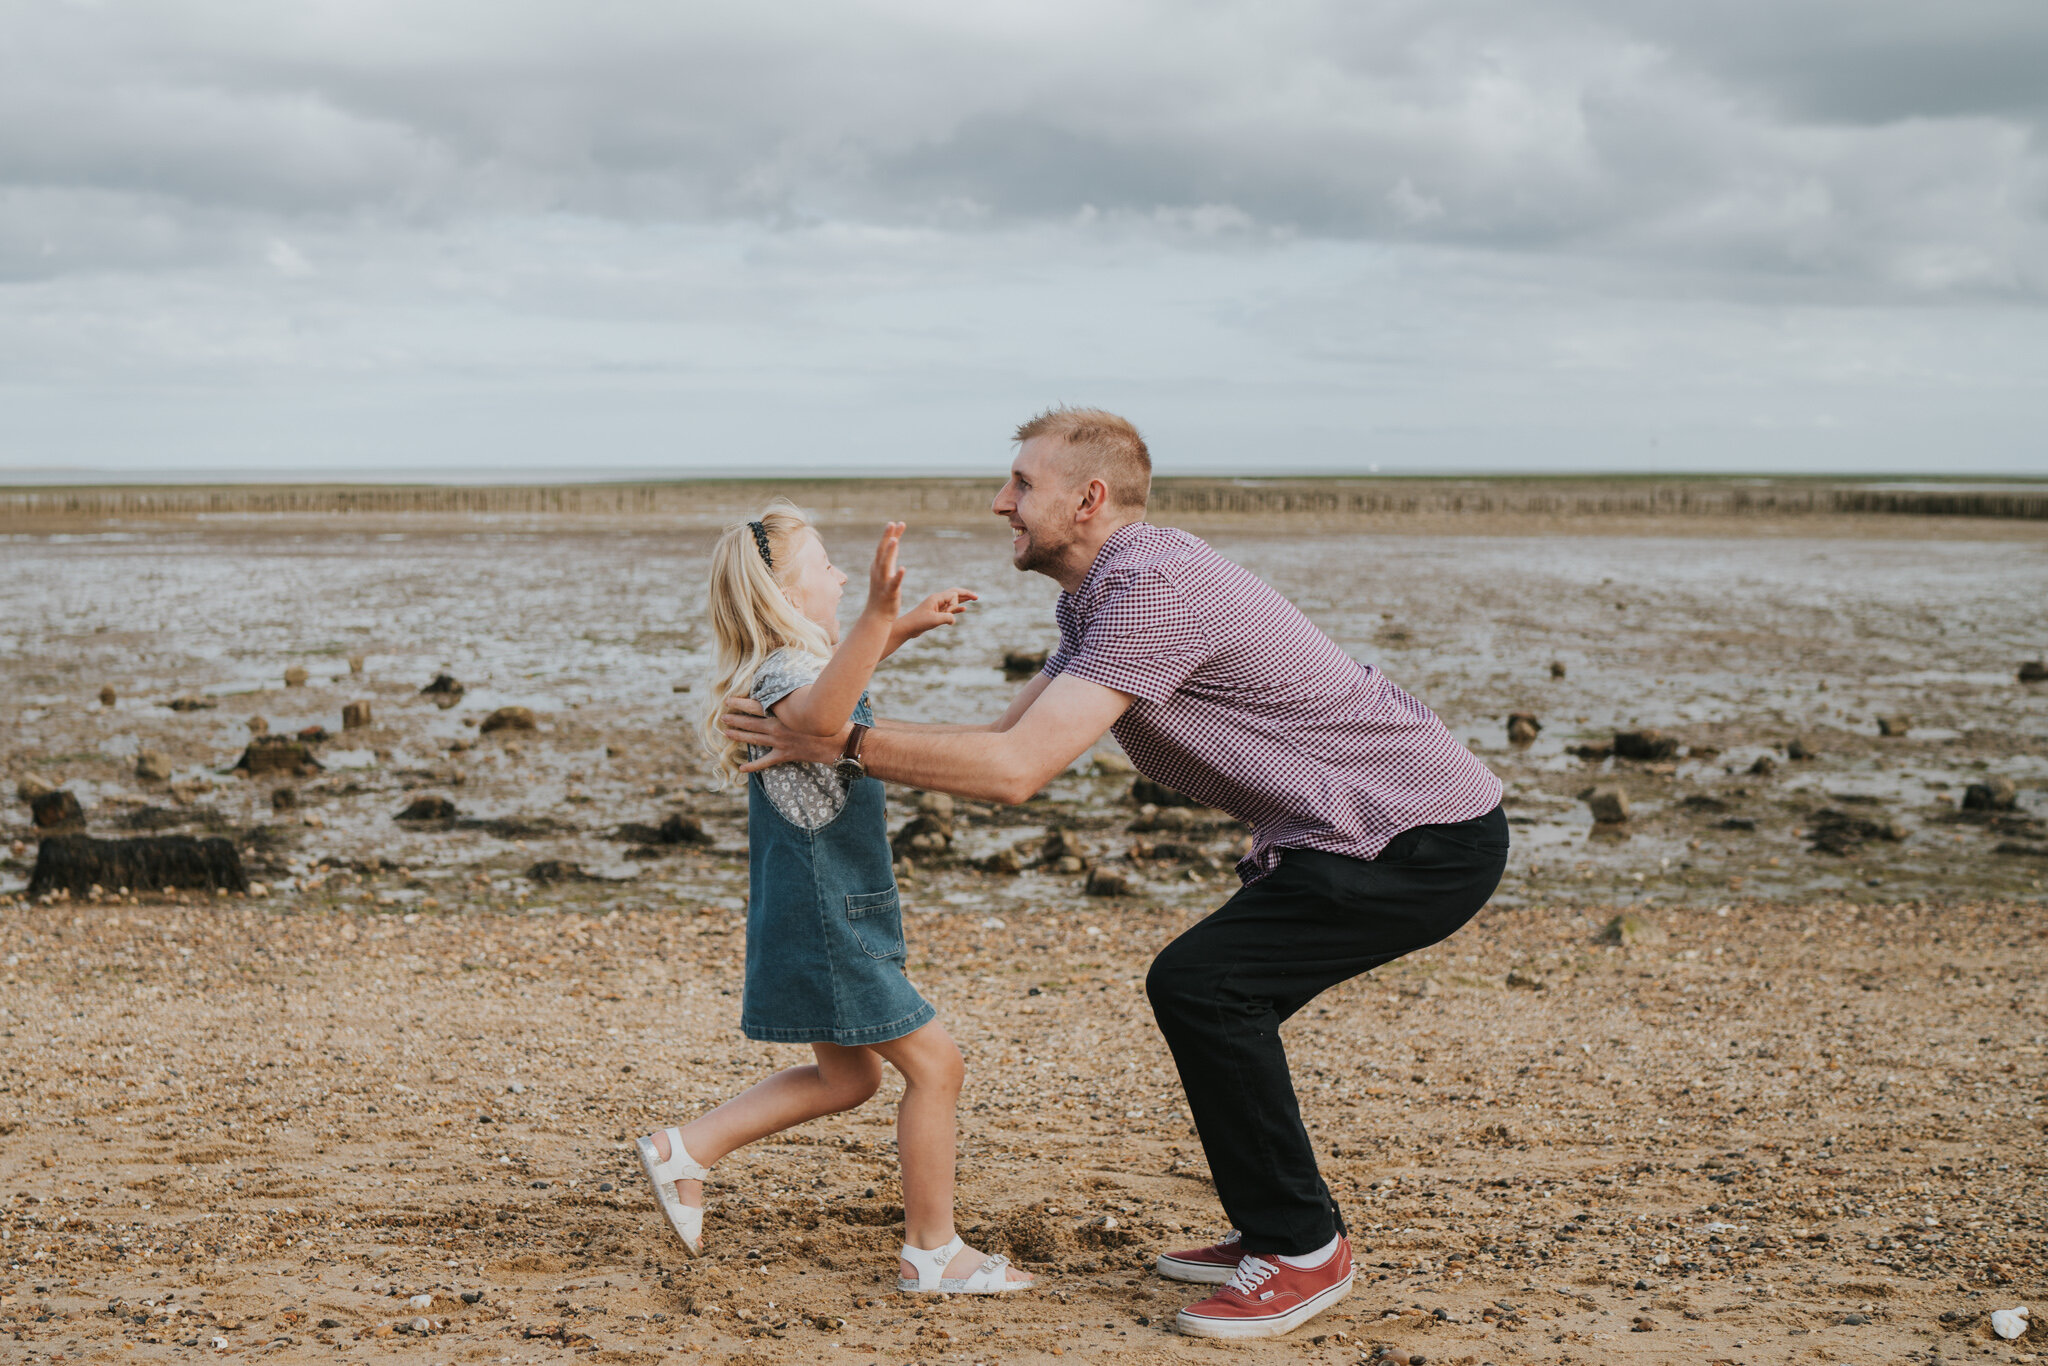 celebratory-beach-family-session-thomson-family-cudmore-grove-east-mersea-grace-elizabeth-colchester-essex-devon-suffolk-and-norfolk-alternative-wedding-and-family-photographer (26 of 53).jpg